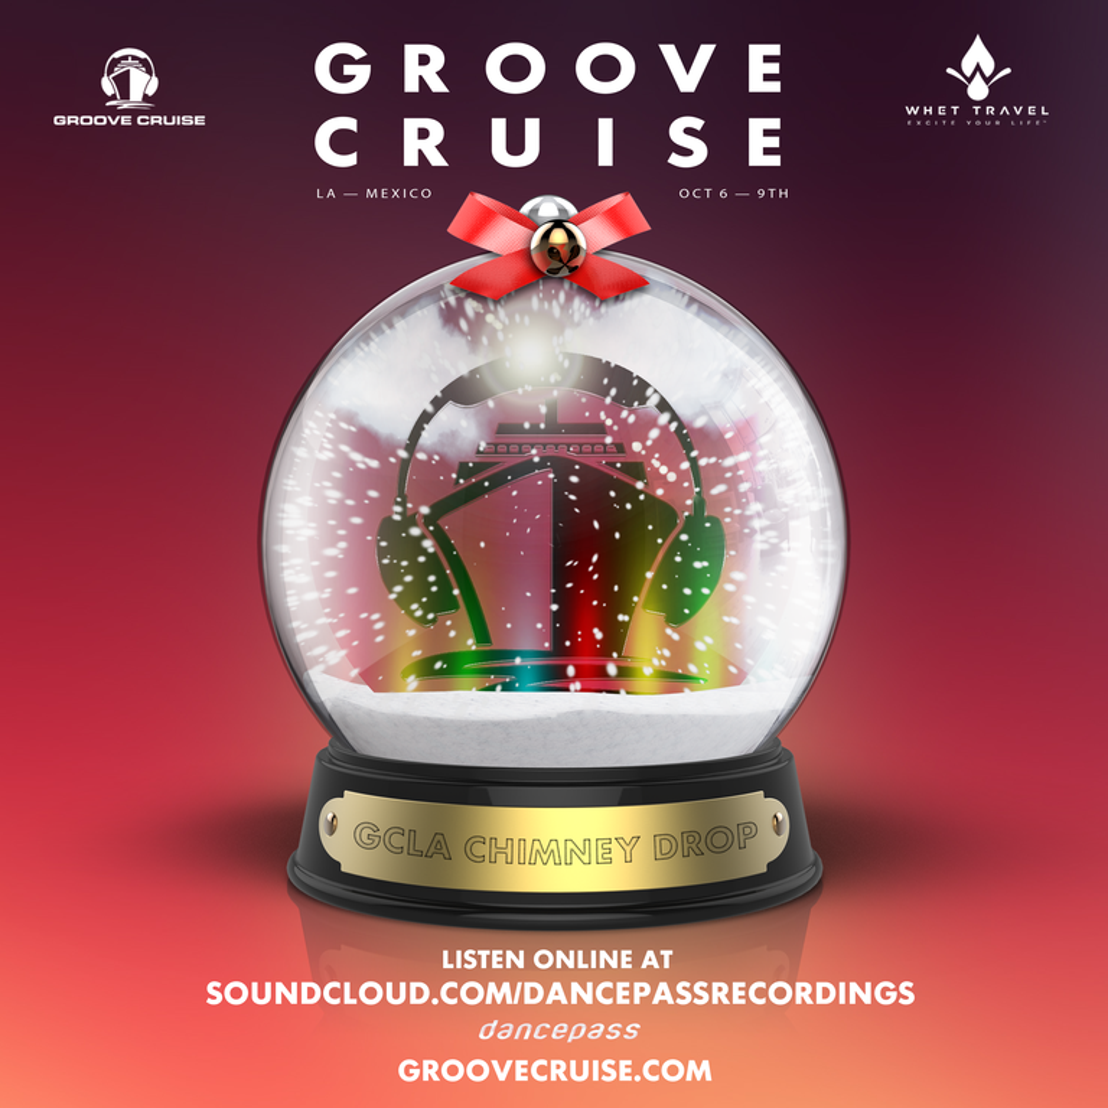 Groove Cruise is Gifting Fans 60 Mixes from LA's 2017 Cruise For The First Ever 'Groove Cruise Chimney Drop'